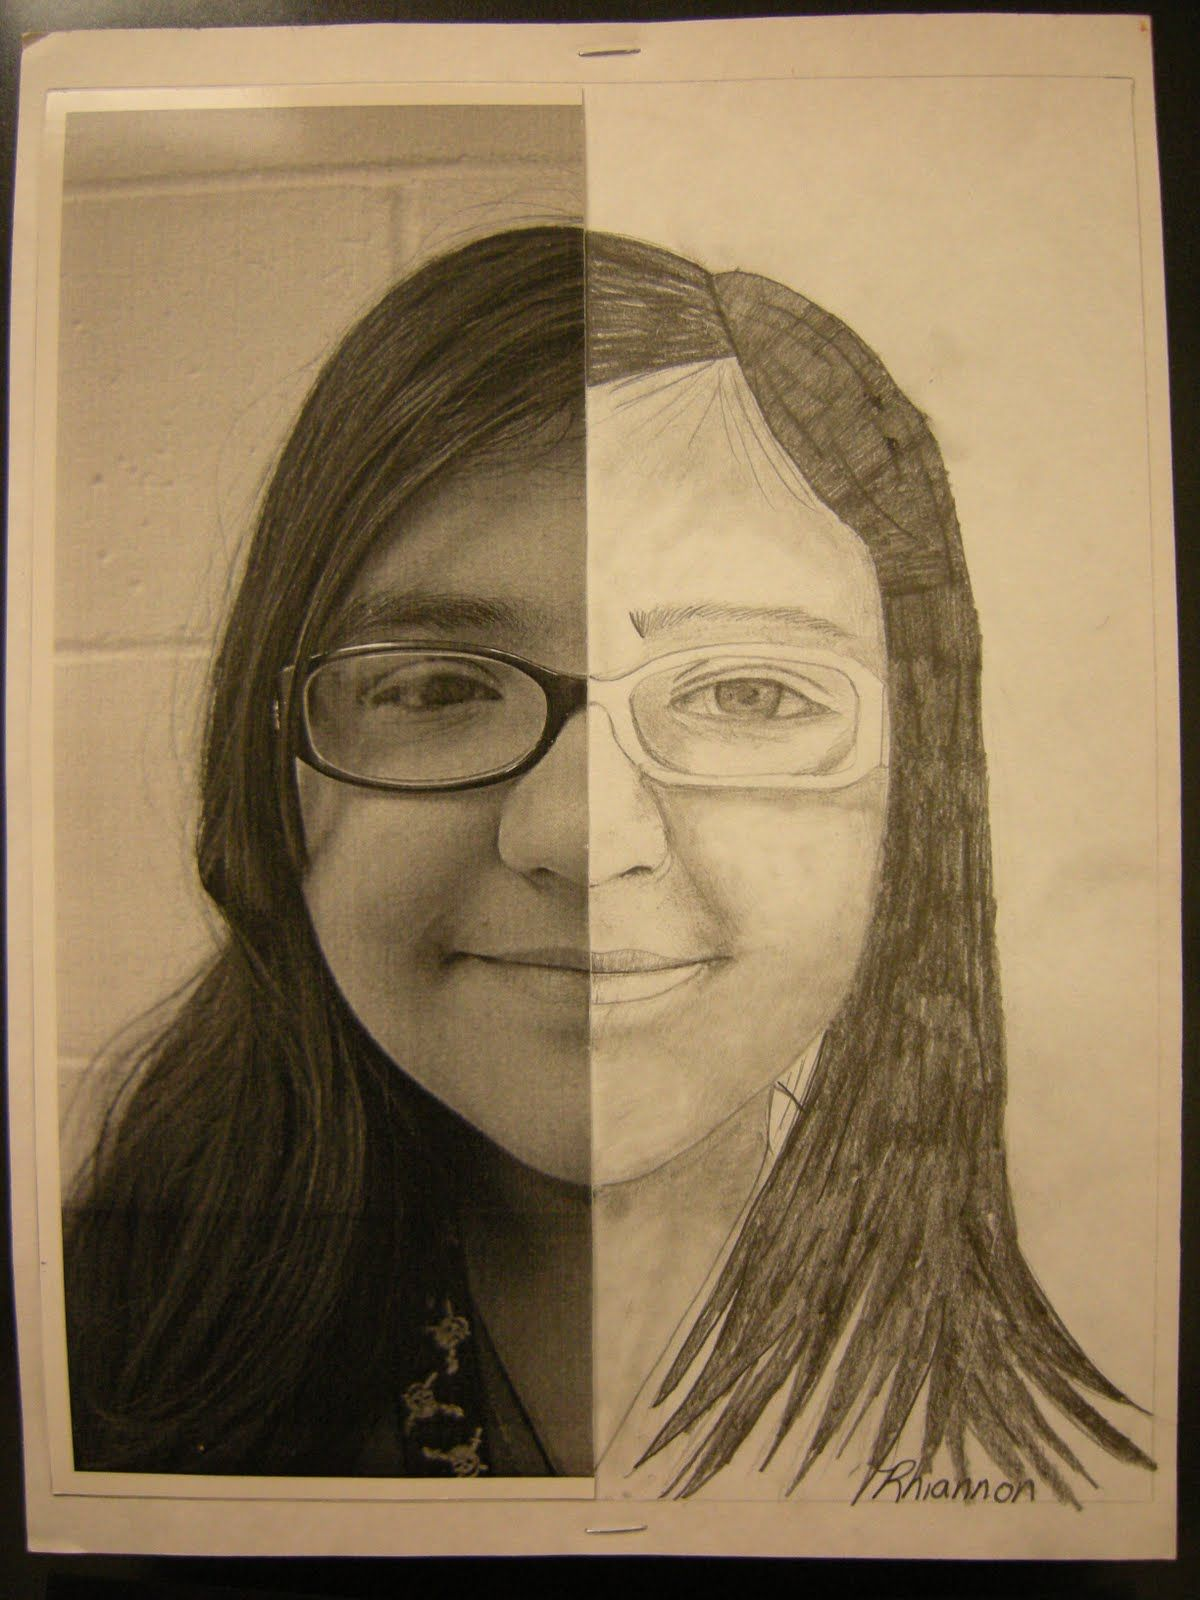 Tart teaching art with attitude pencil symmetrical self portraits